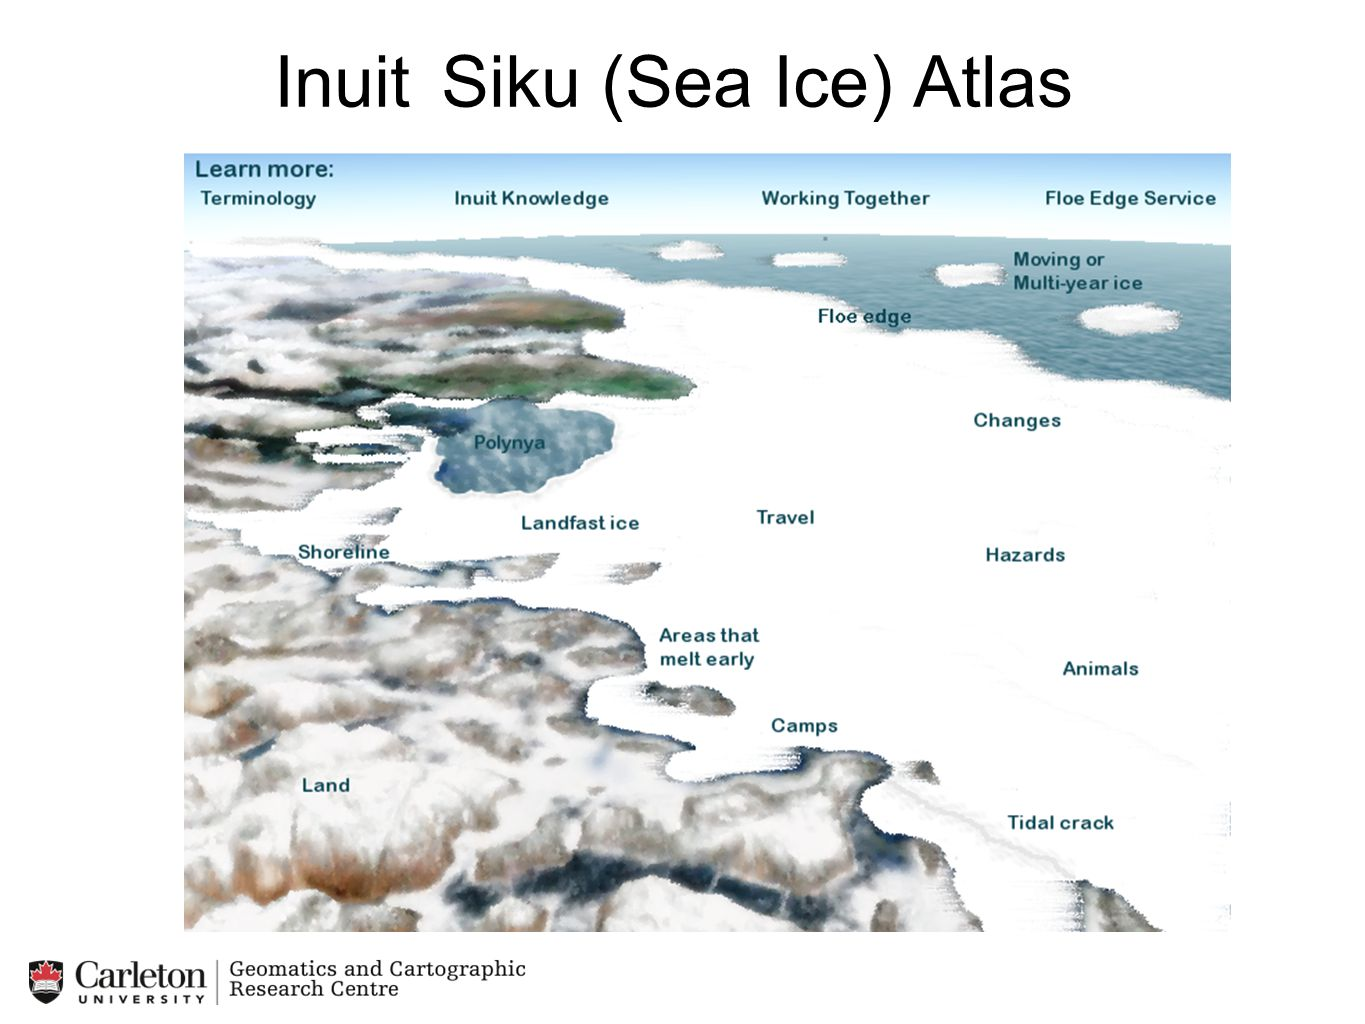 Inuit Siku (Sea Ice) Atlas